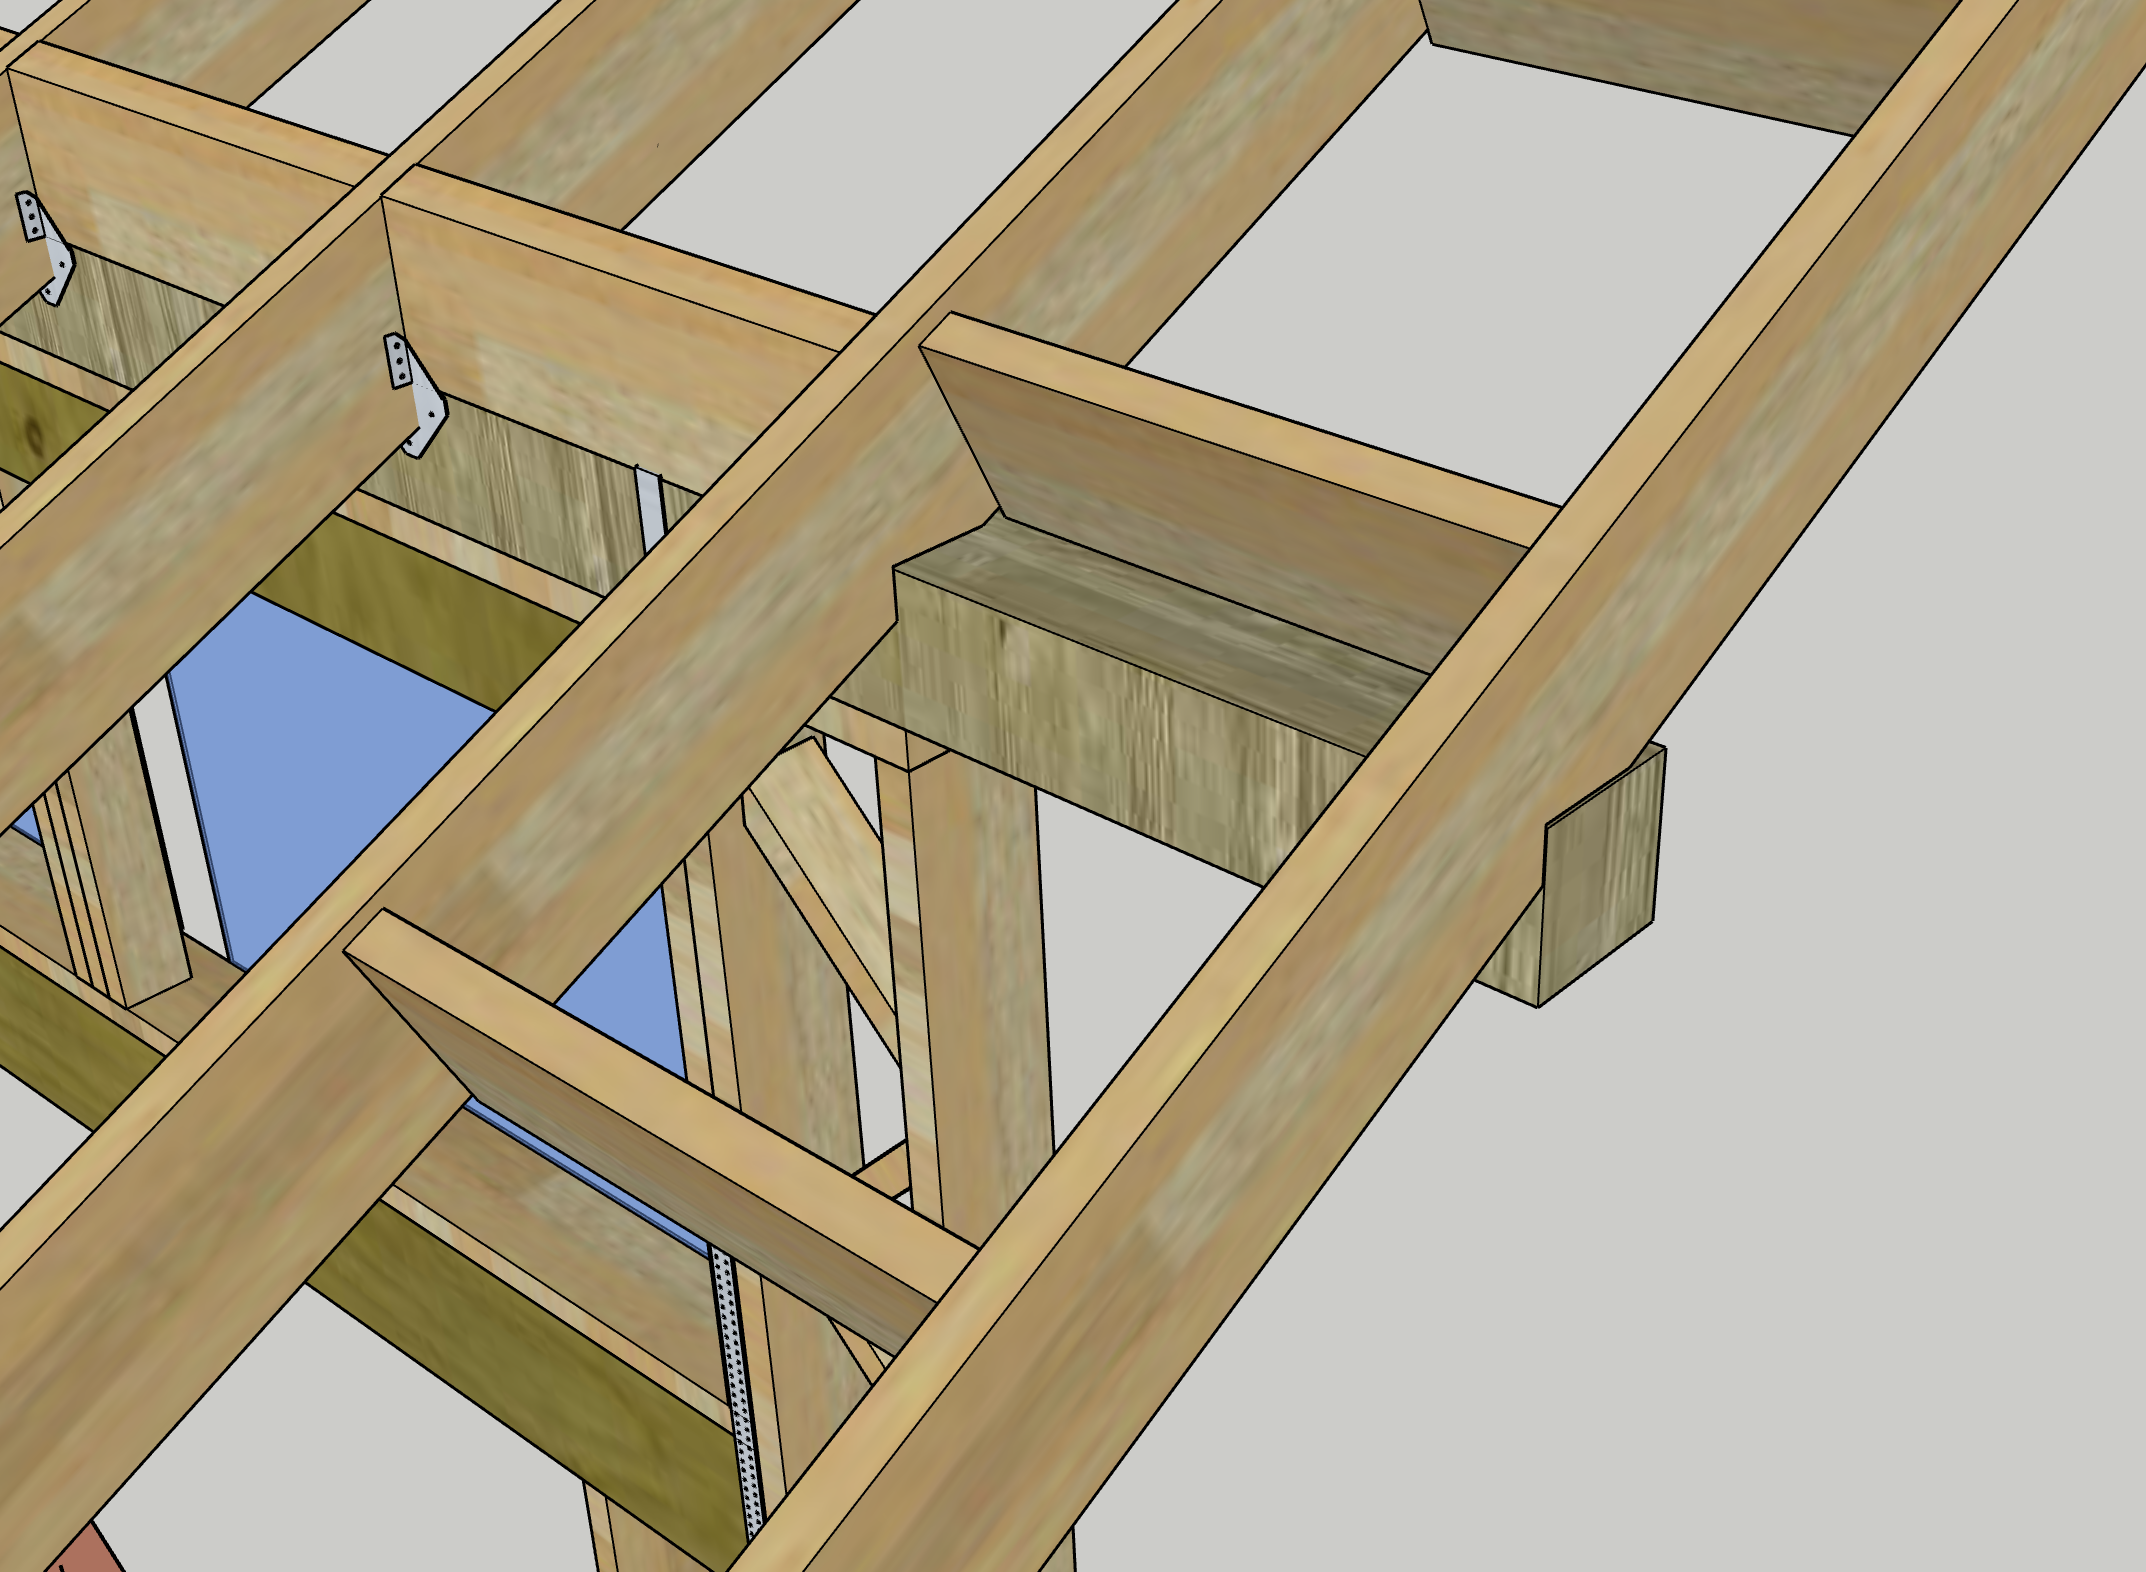 Shed / workshop framing design--is it too ambitious?-screen-shot-2020-04-25-3.37.18-pm.png